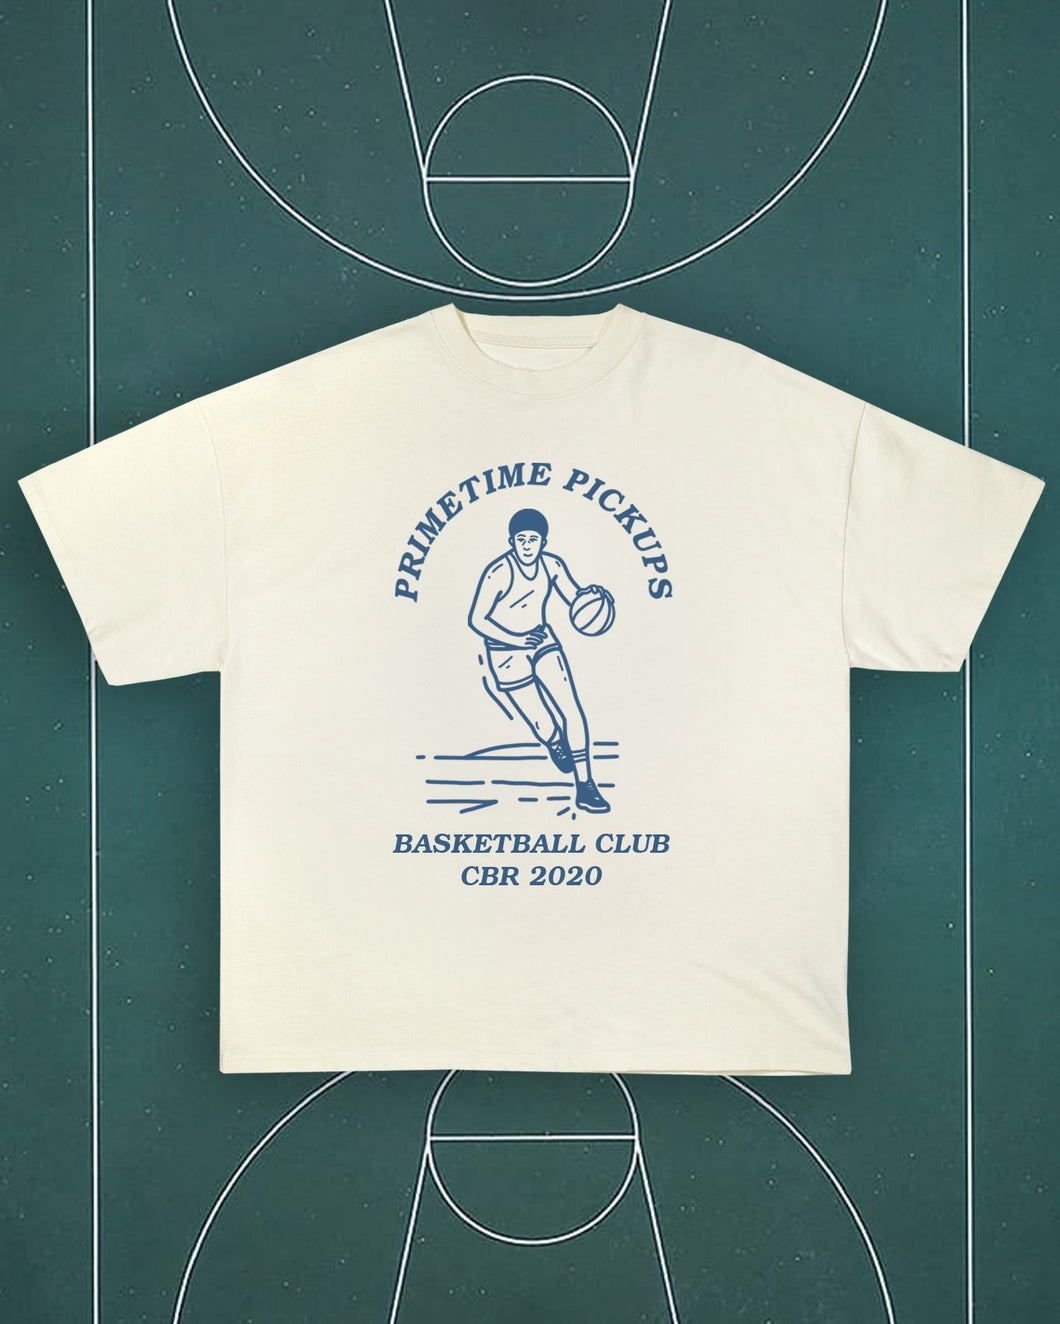 Primetime Pickups Basketball Club T-Shirt